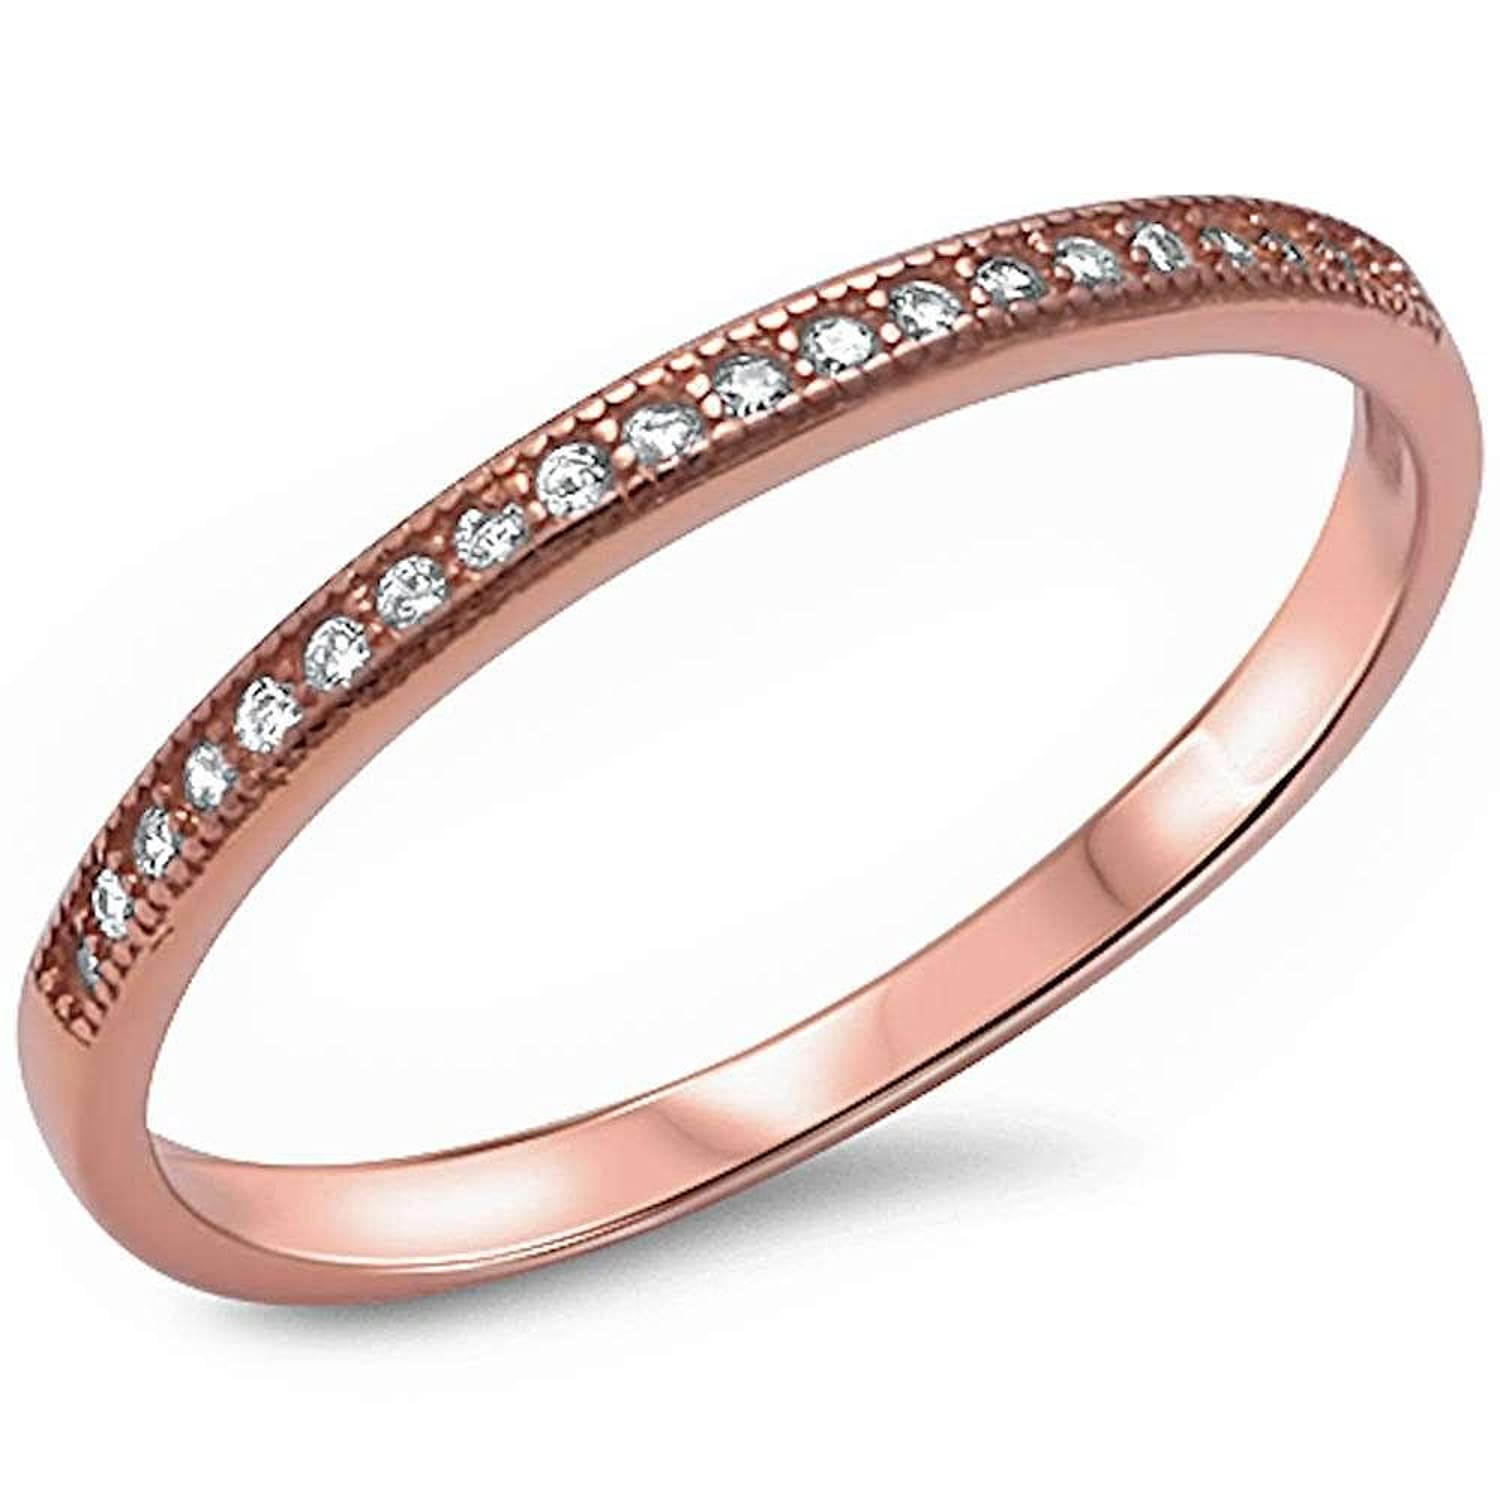 Brightt Rose Gold Plated Micro Pave Cz Band .925 Sterling Silver Ring Sizes 4-12